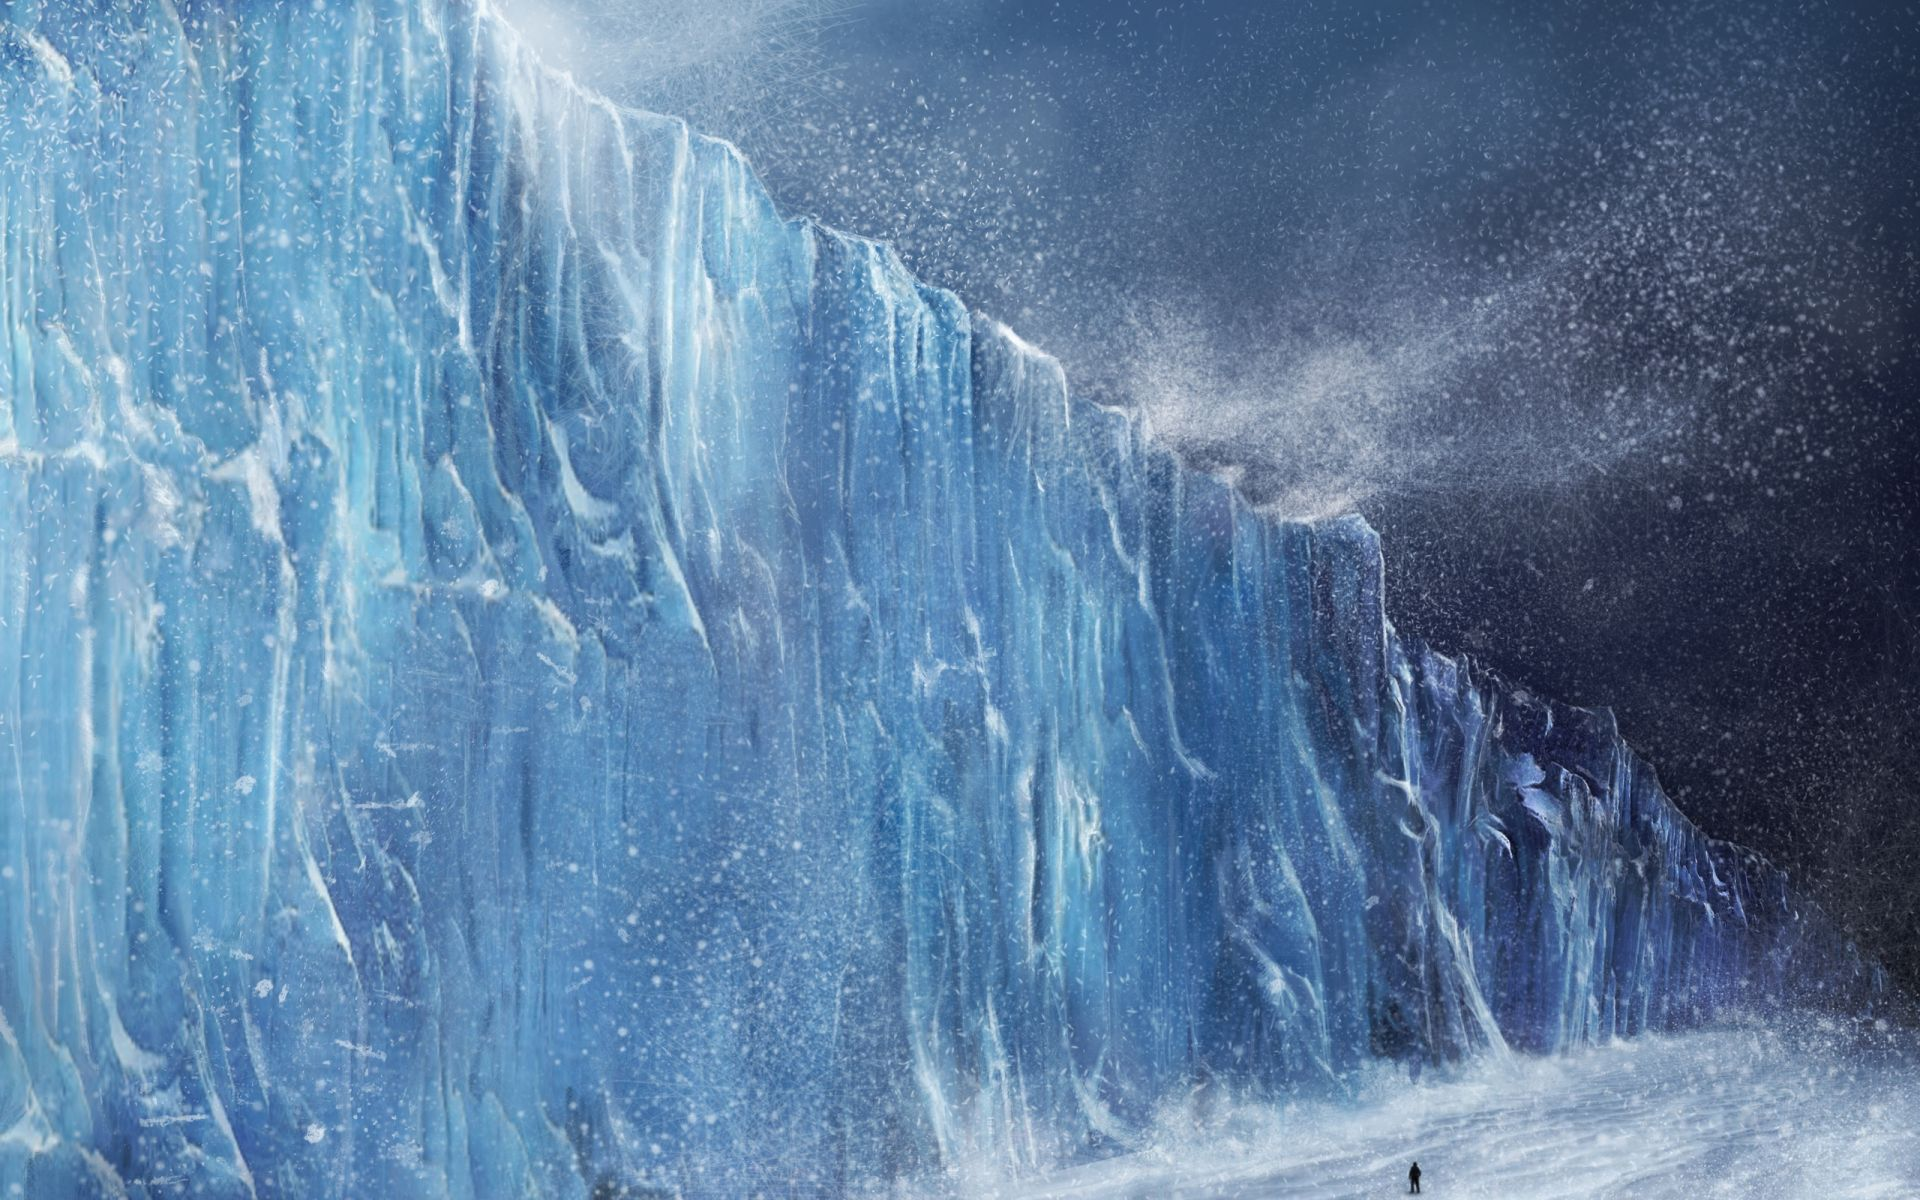 Game of Thrones landscape wall